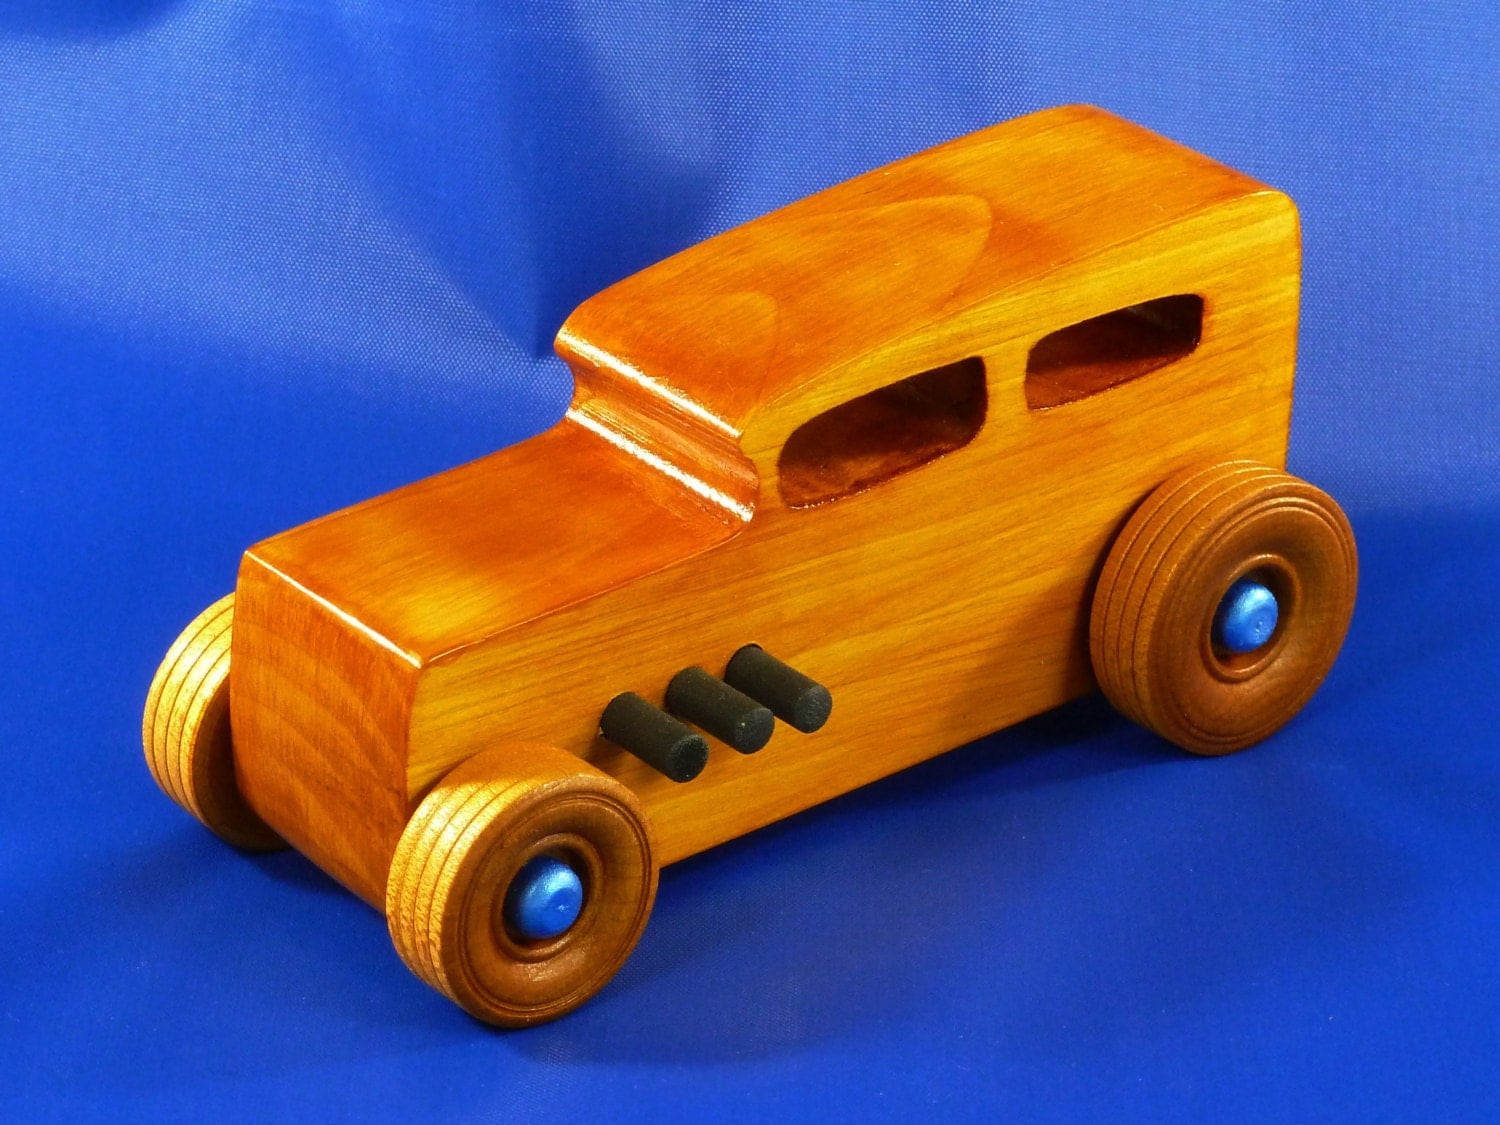 Toys Are Us Wooden Toys : Wood toy cars wooden toys car